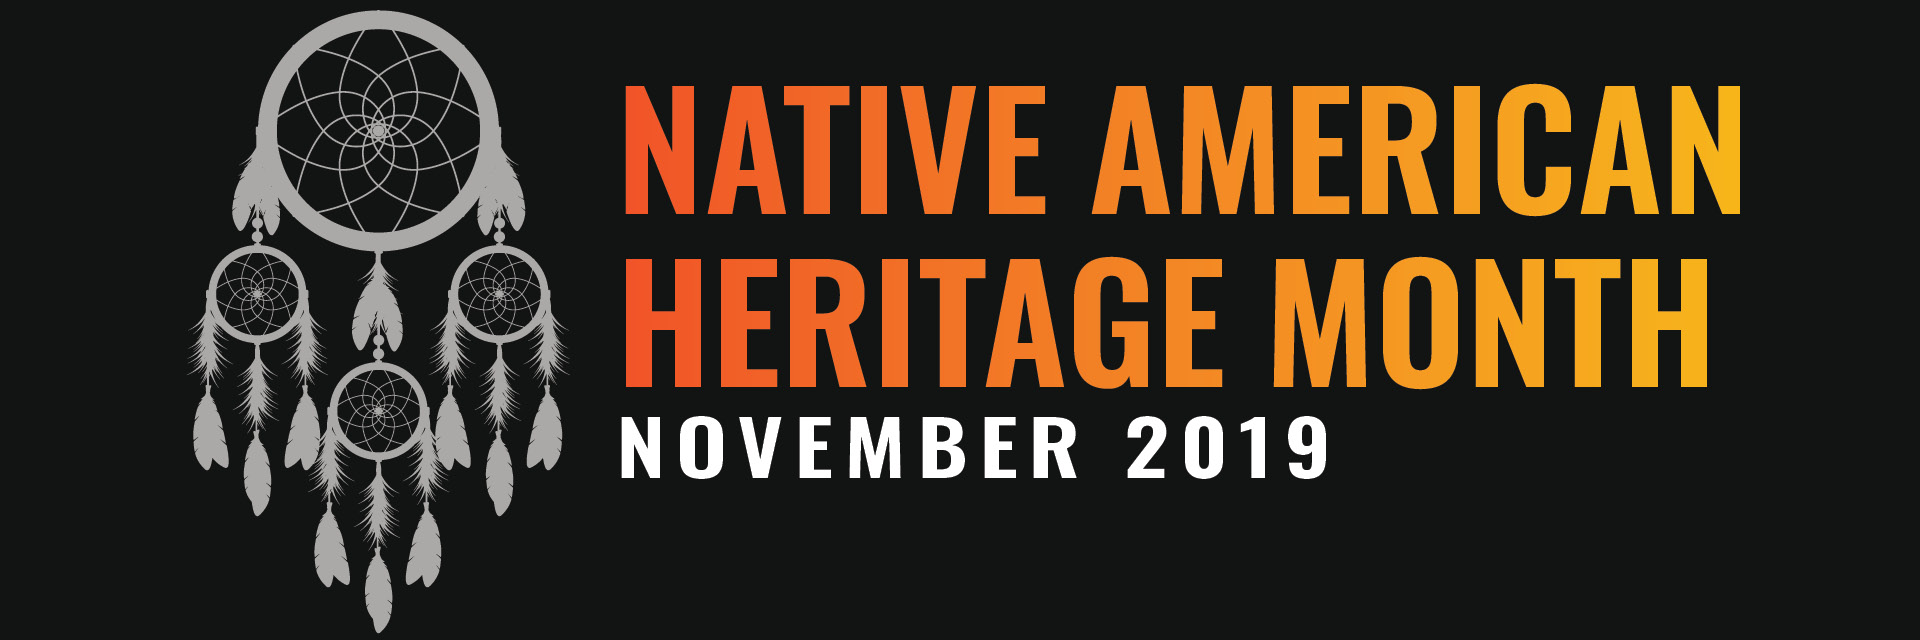 Native American Heritage month 2019